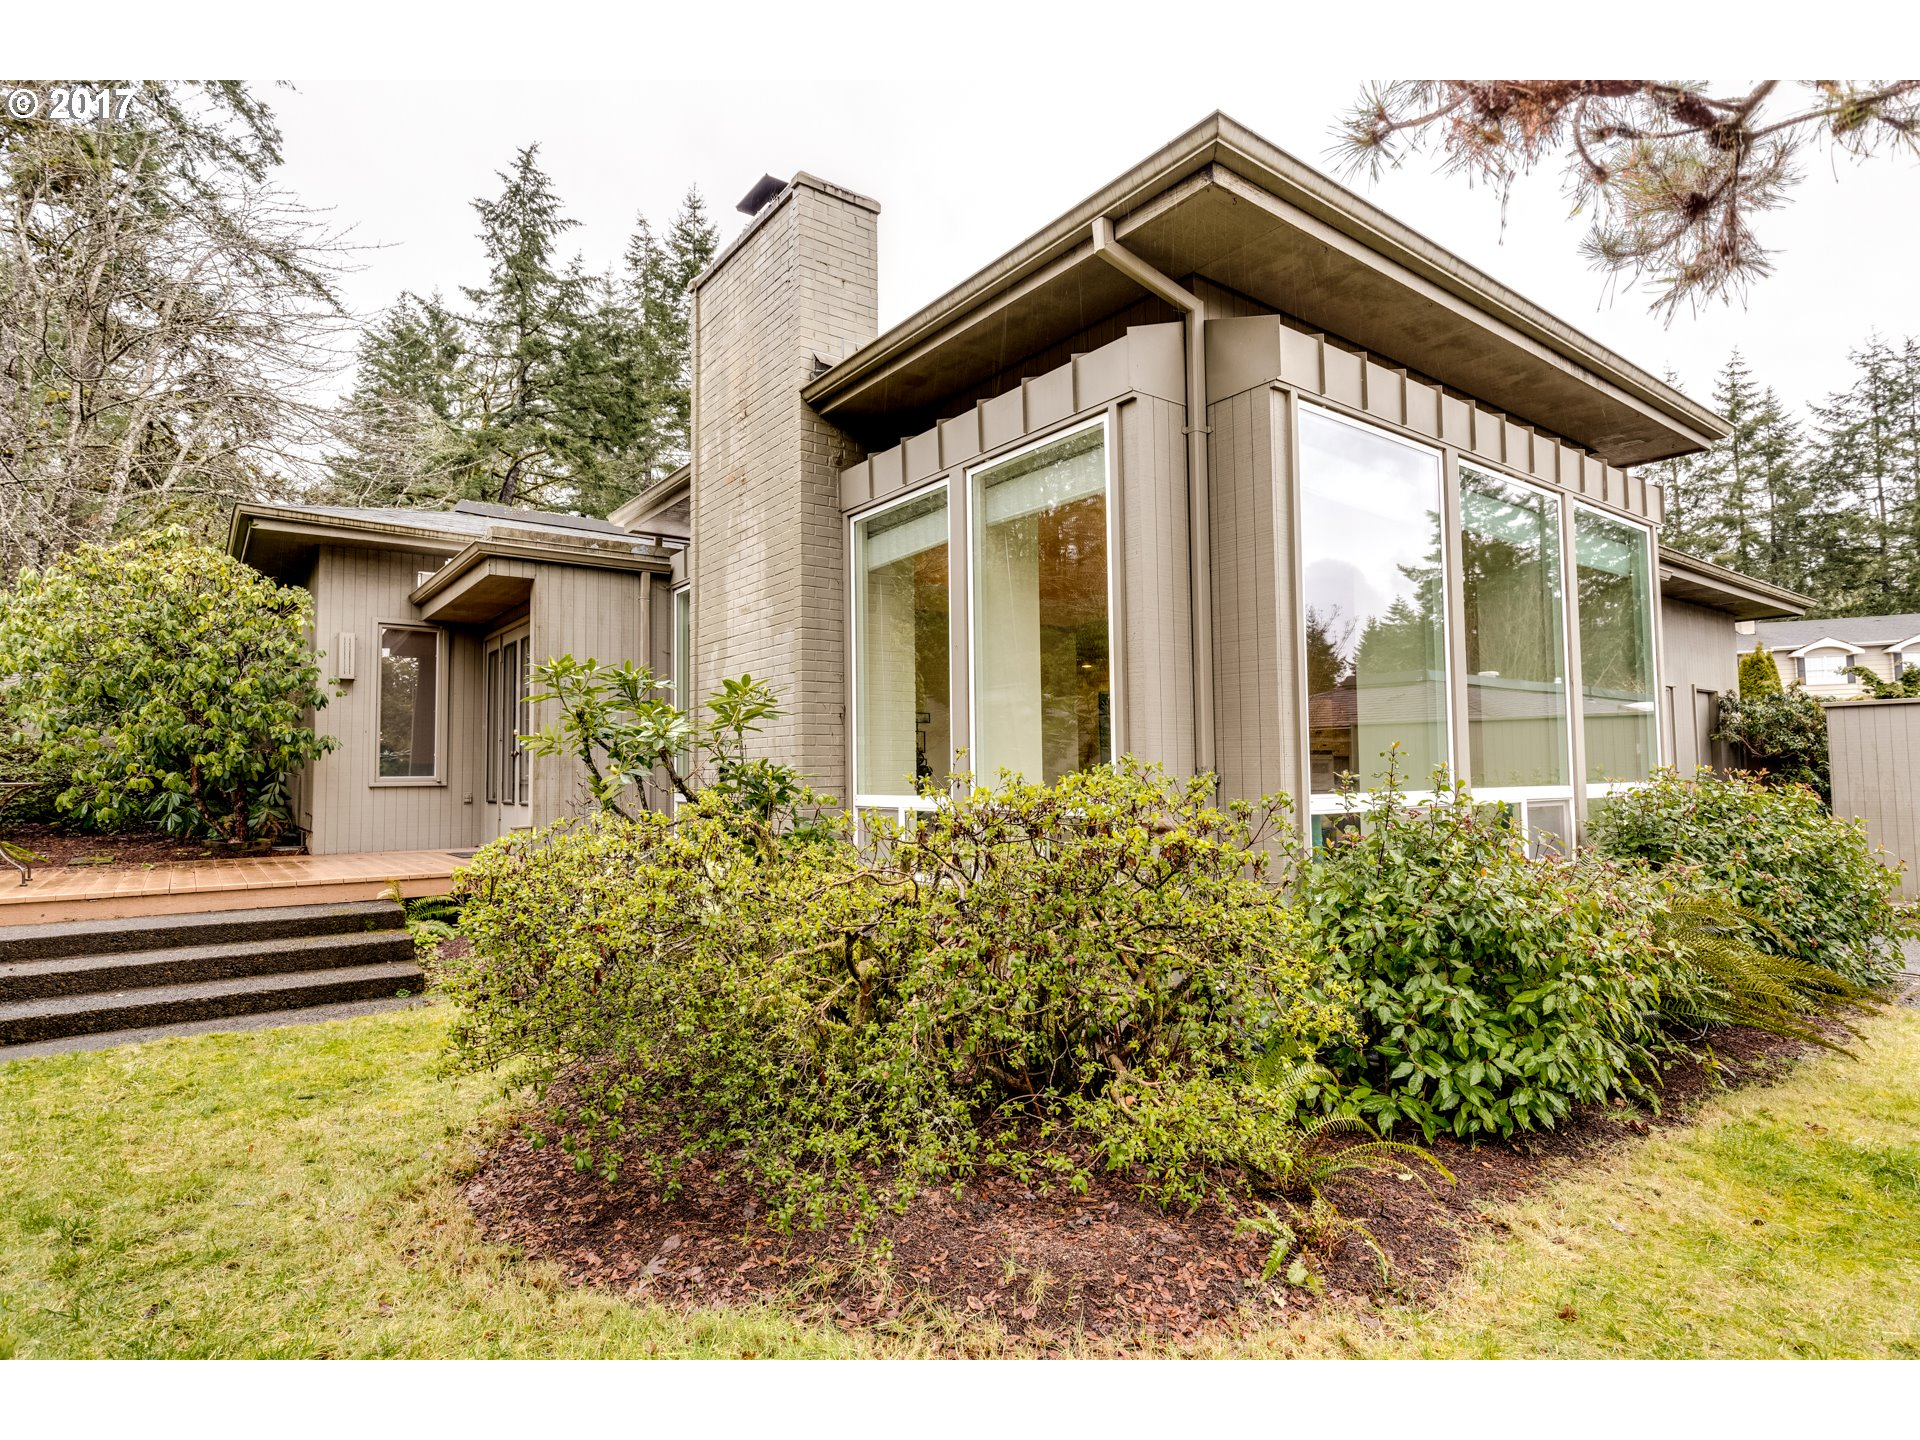 1621 sq. ft 2 bedrooms 2 bathrooms  House For Sale, Eugene, OR